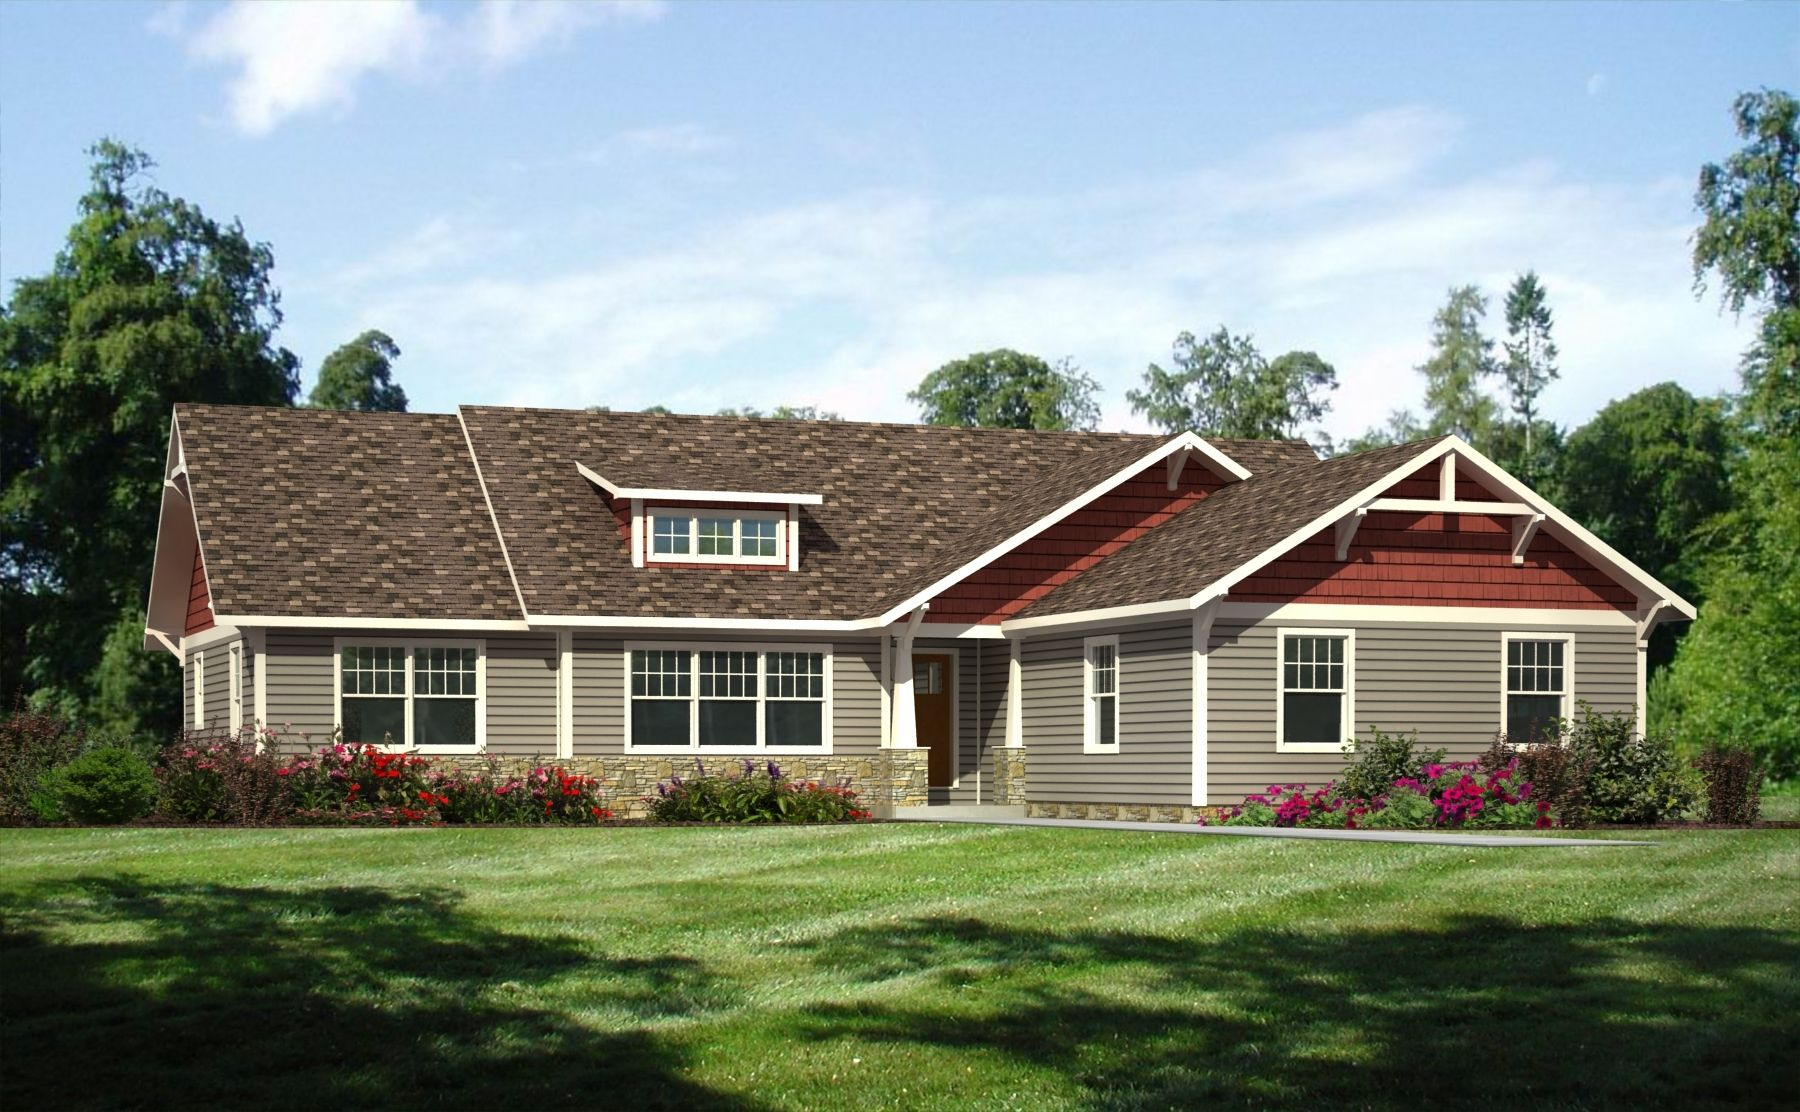 Exterior house color ideas ranch style - House